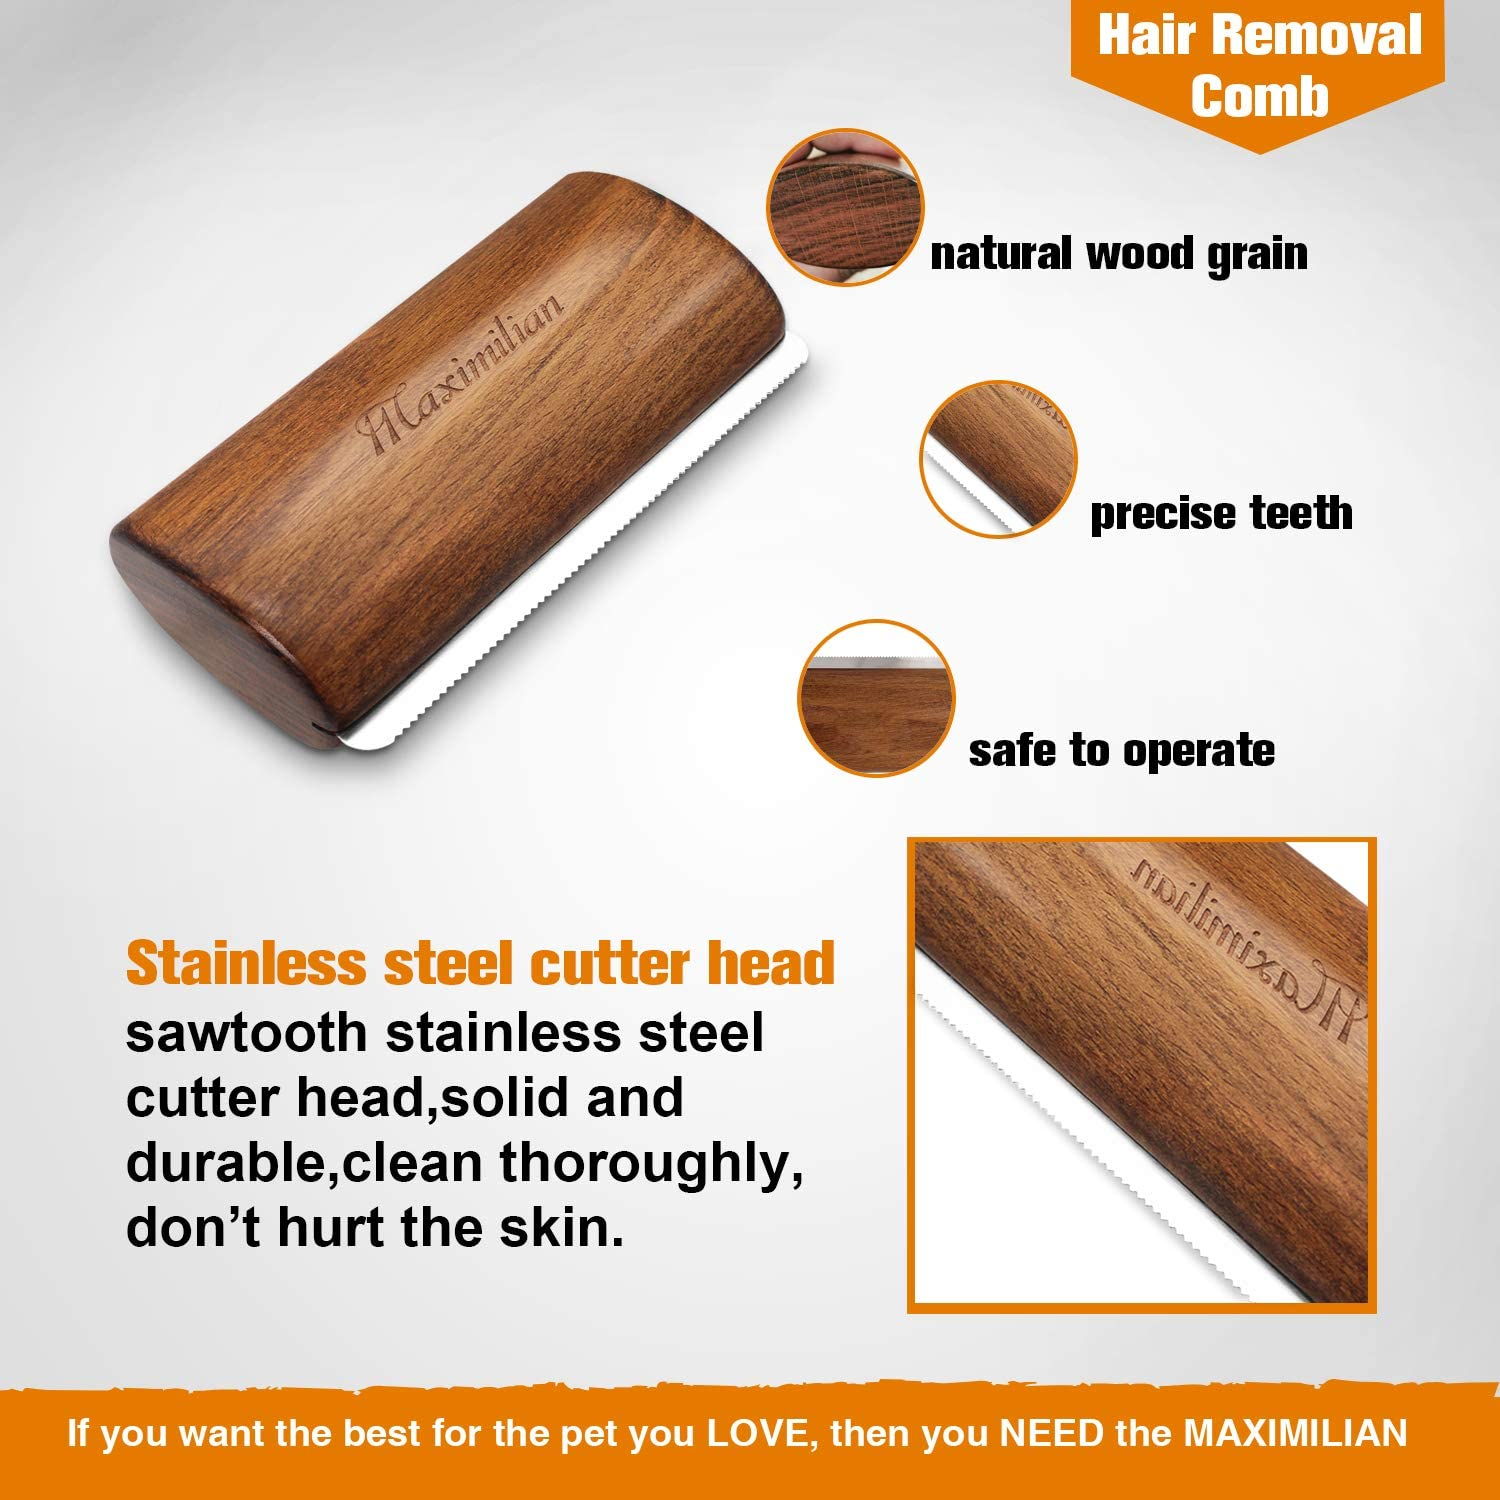 Premium Handmade Deshedding Grooming Comb for Dogs Undercoat Wood Groom Brush for Short /& Long Hair, Professional Shedding Blade Painlessly Remove 92/% of Loose Hair Fur /& Dirt. Cats /& Horses